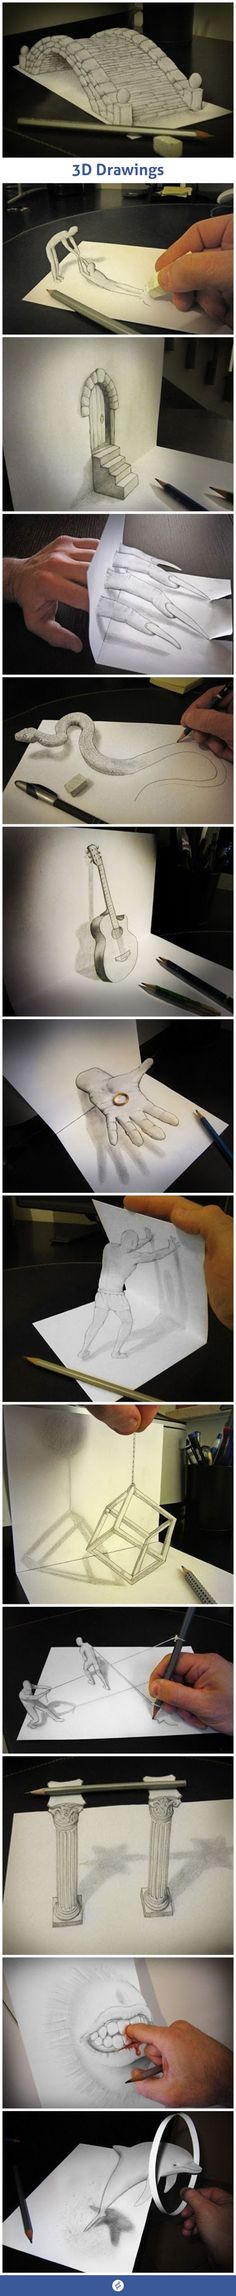 Amazing 3D-Drawings Art  #photuwalebaba